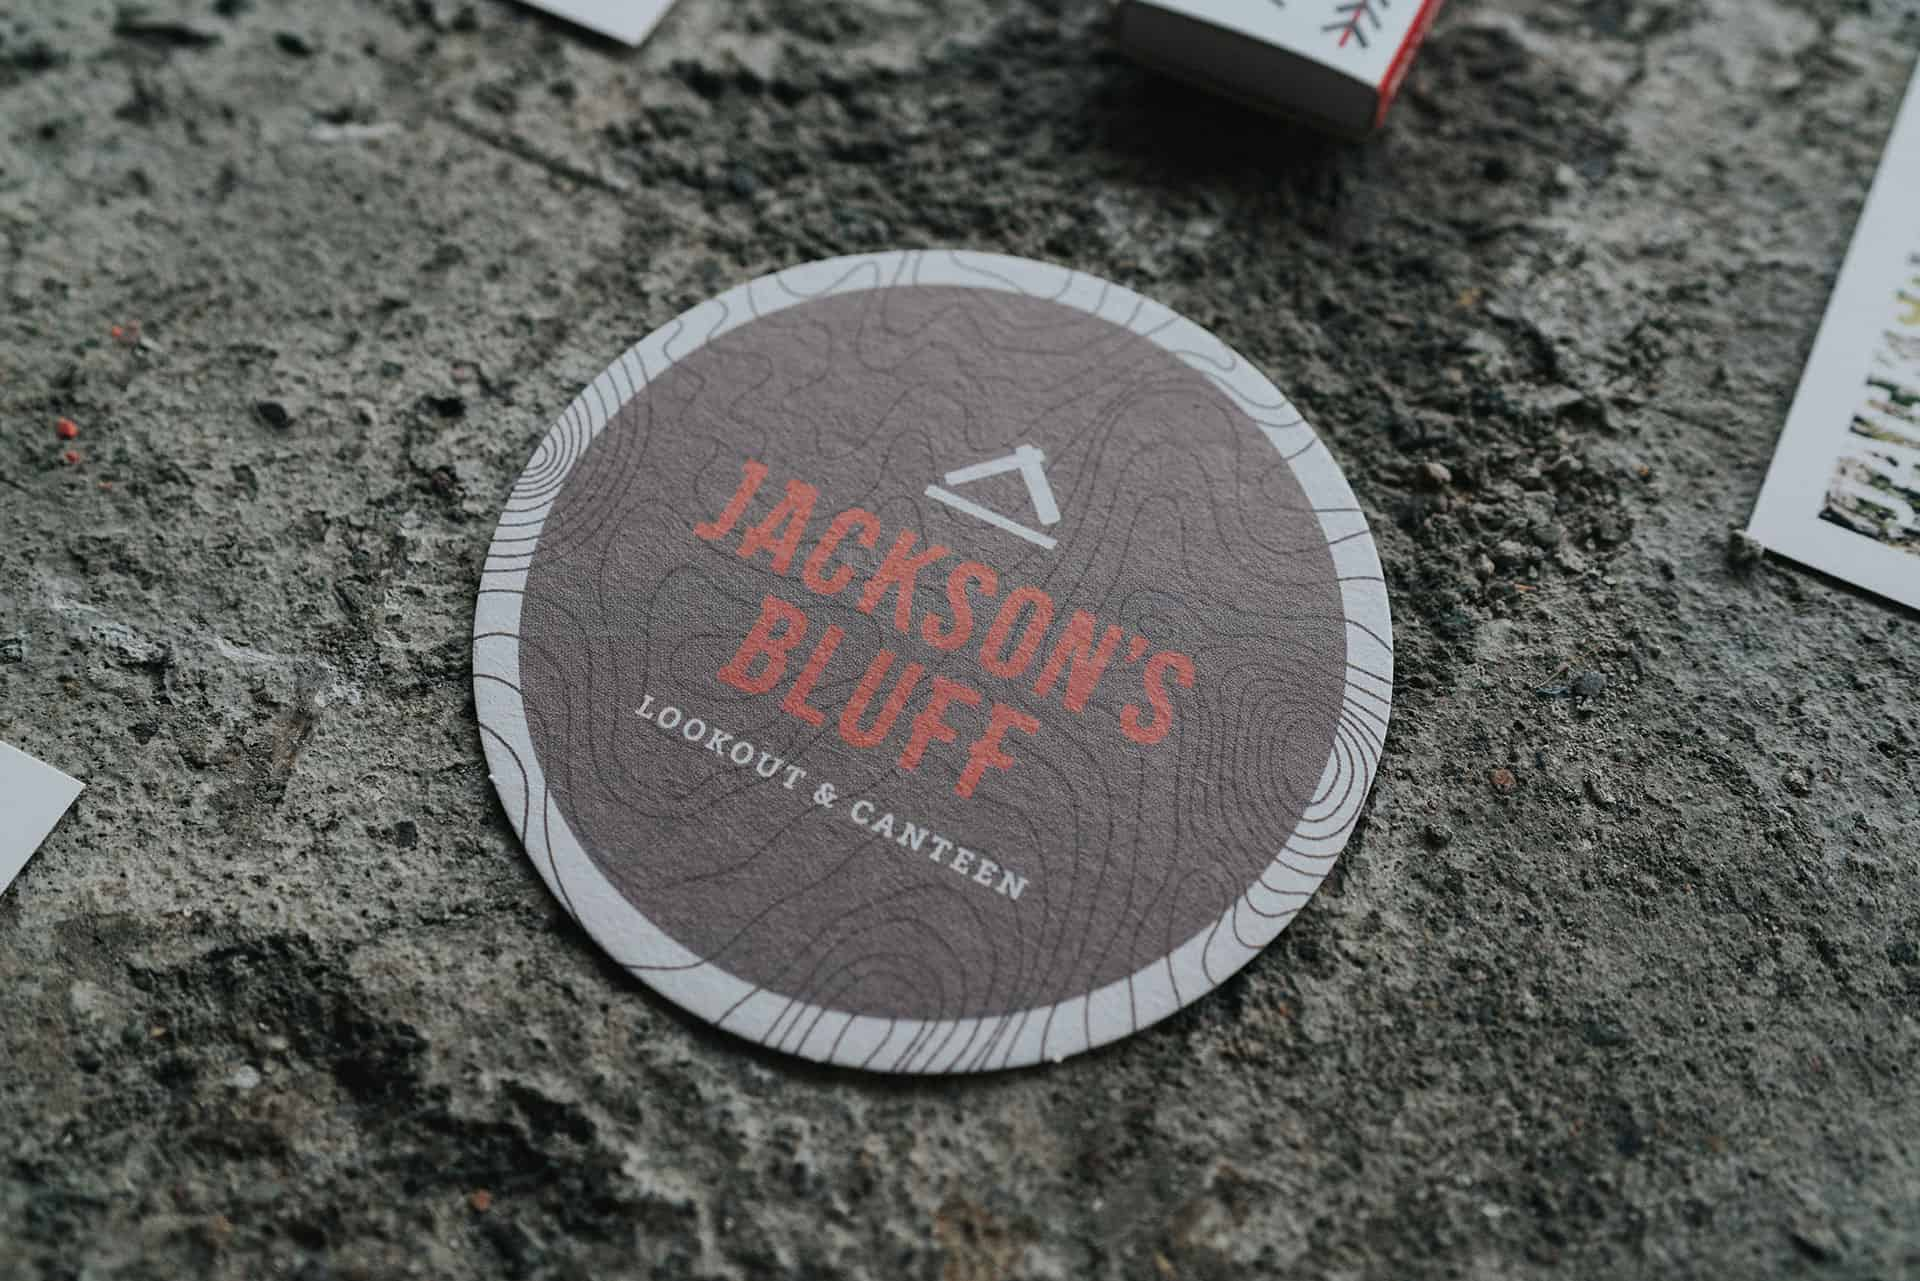 Jackson's Bluff lookout and canteen rooftop and bar branding for Crowne Plaza coasters